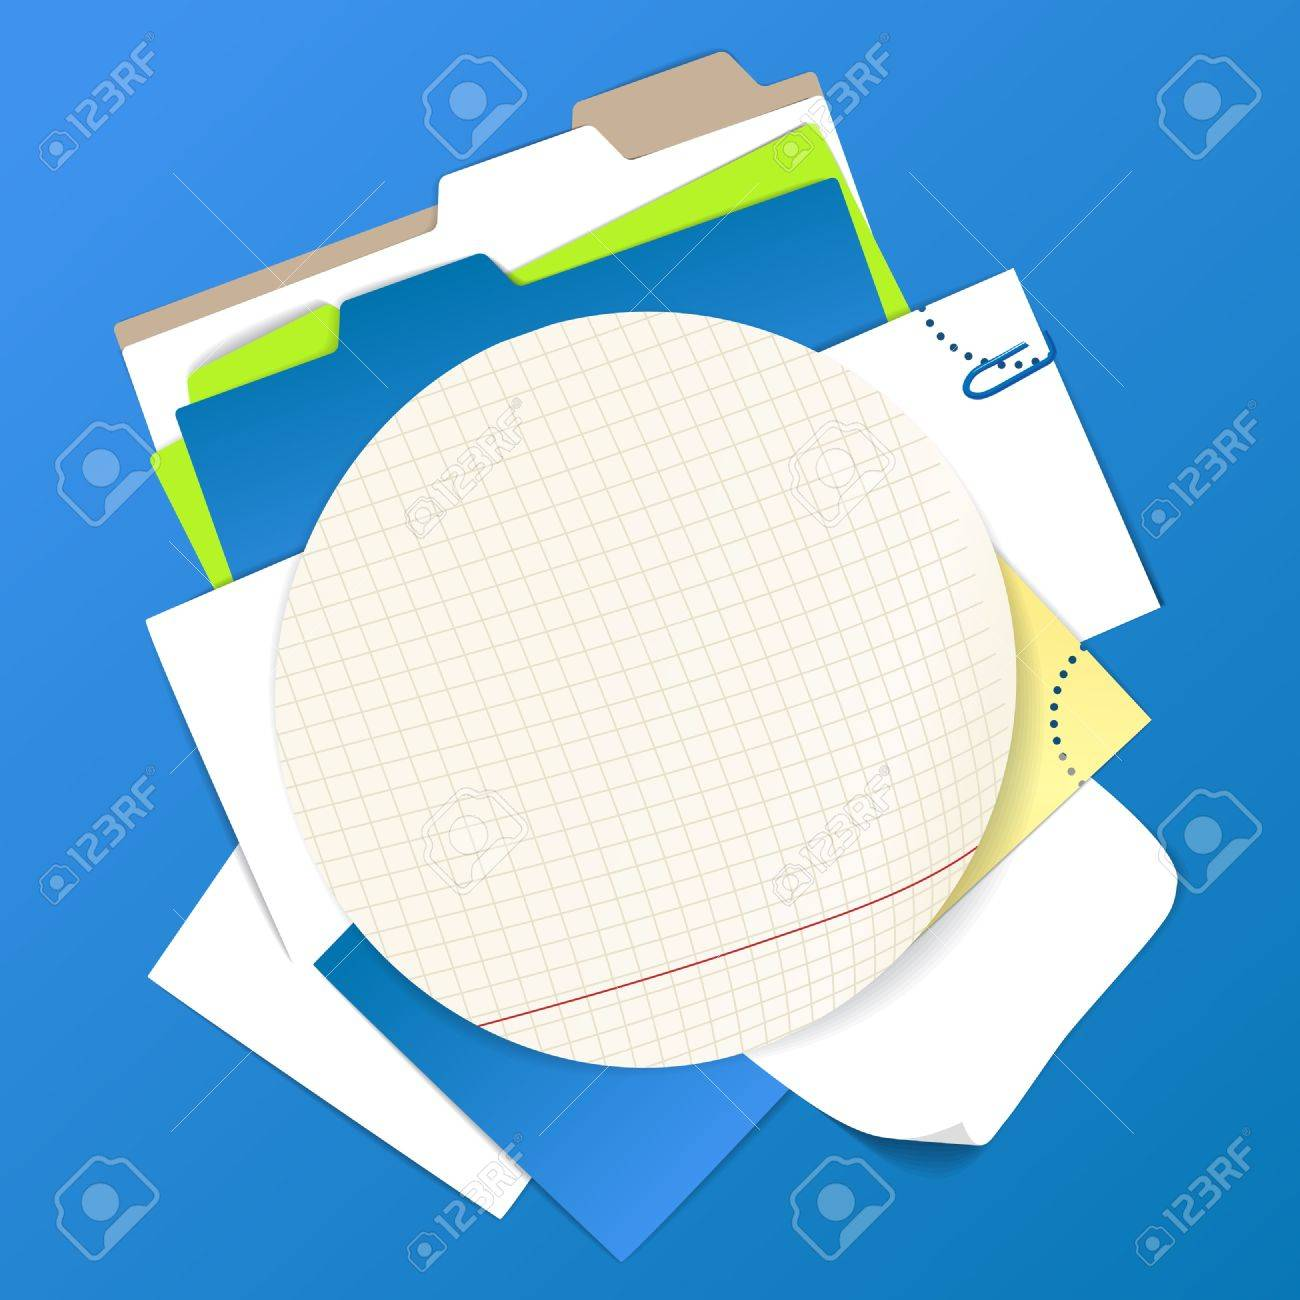 Circular background of color office stuff Stock Vector - 11333444